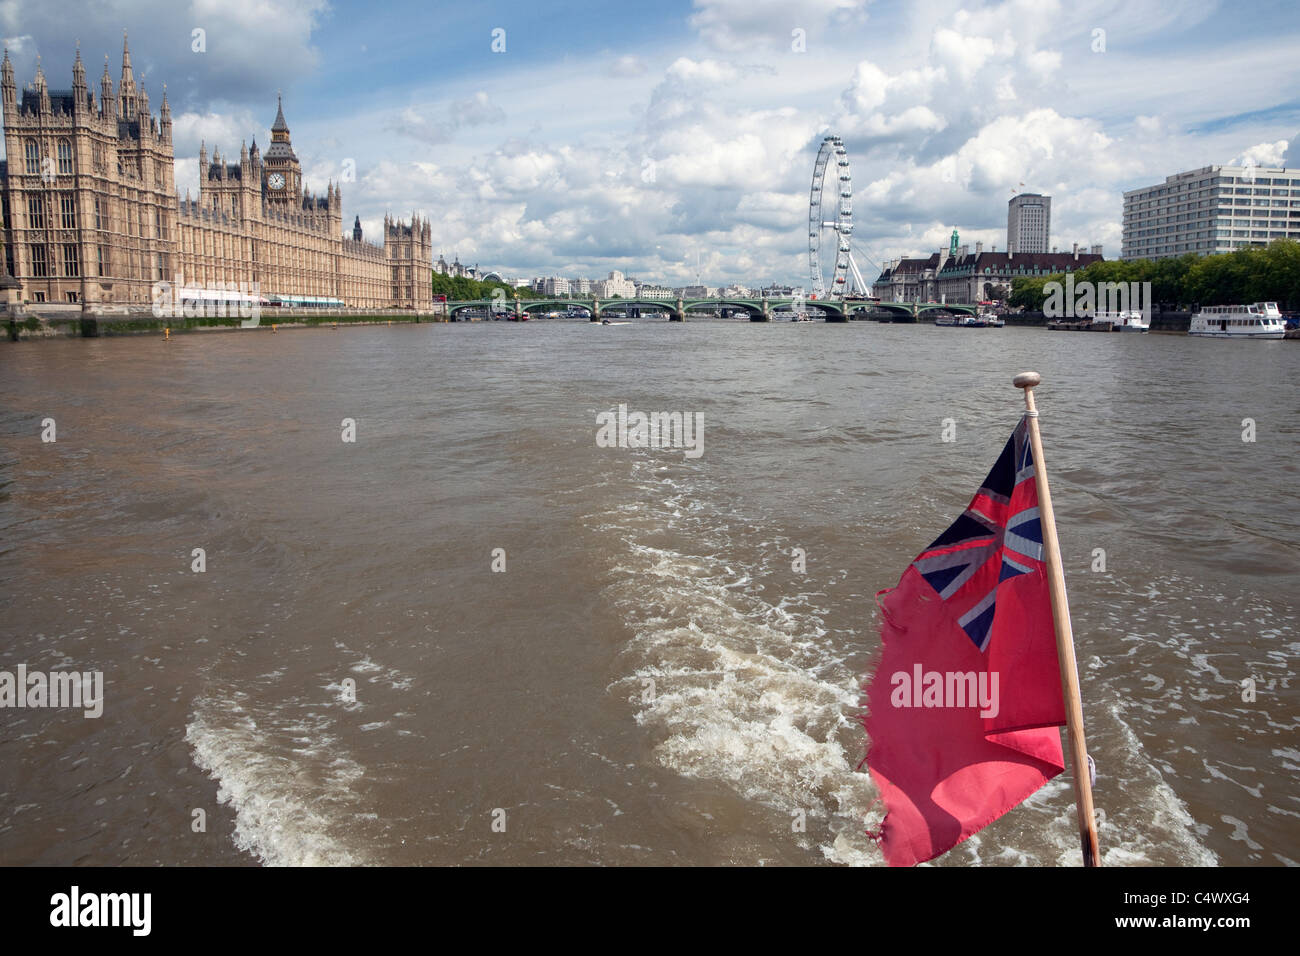 Houses of Parliament from River Thames cruise boat, London - Stock Image